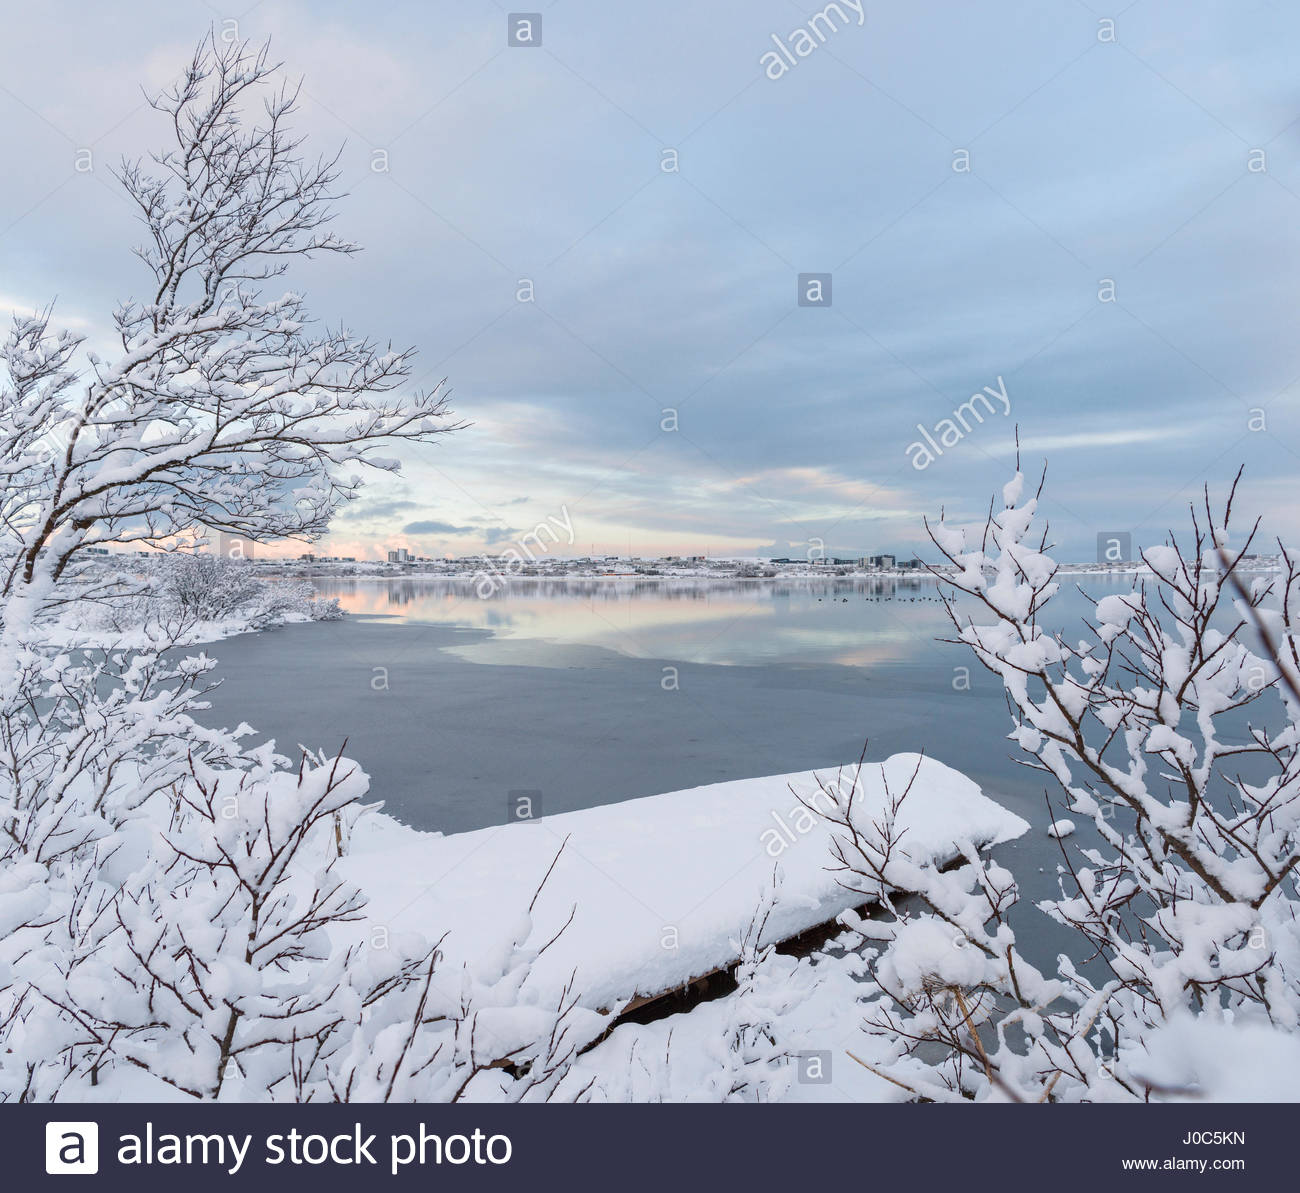 Snow covered bushes on water's edge at Lake Ellidavatn, Iceland - Stock Image